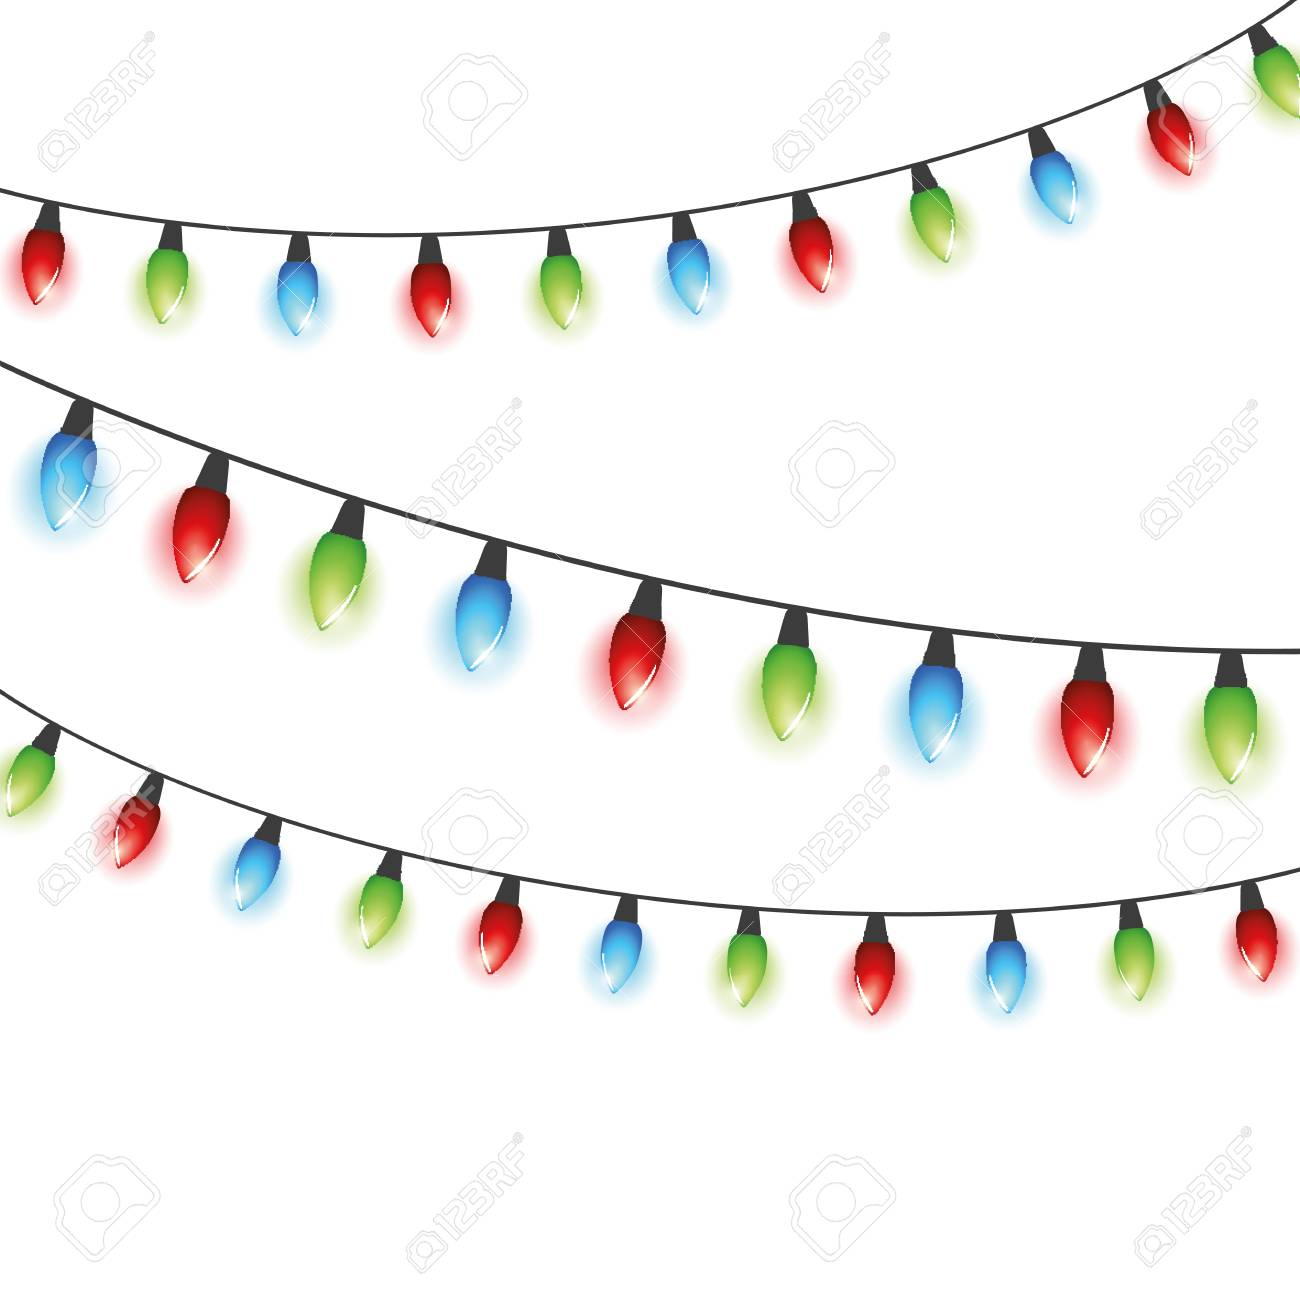 Christmas Fairy Lights Illustration.Colorful Christmas Fairy Lights In Red Green Blue Colors On White